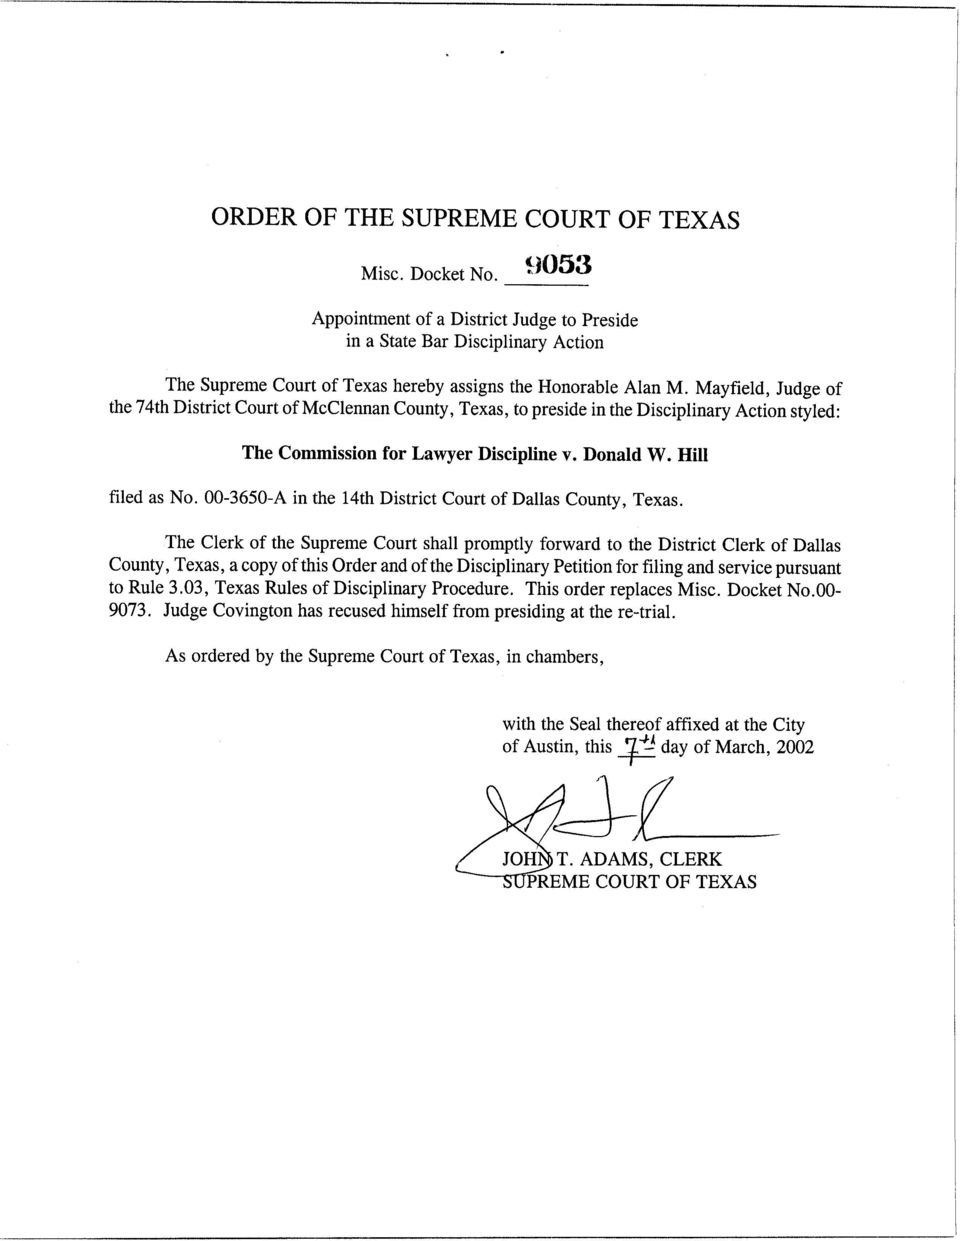 Mayfield, Judge of the 74th District Court of McClennan County, Texas, to preside in the Disciplinary Action styled: The Commission for Lawyer Discipline v. Donald W. Hill filed as No.